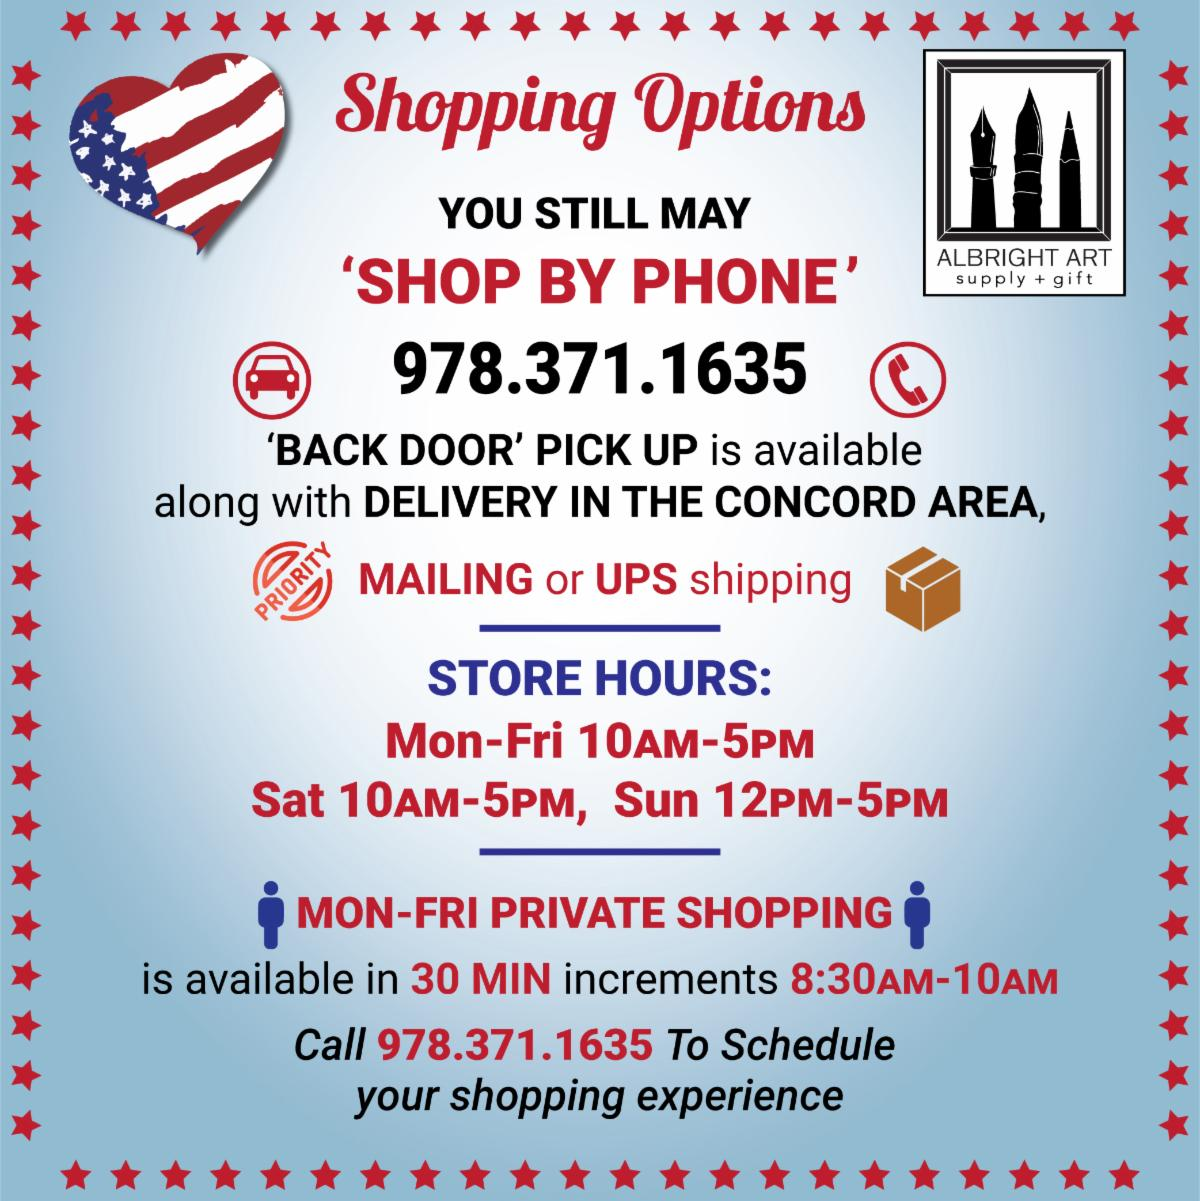 Shop by phone